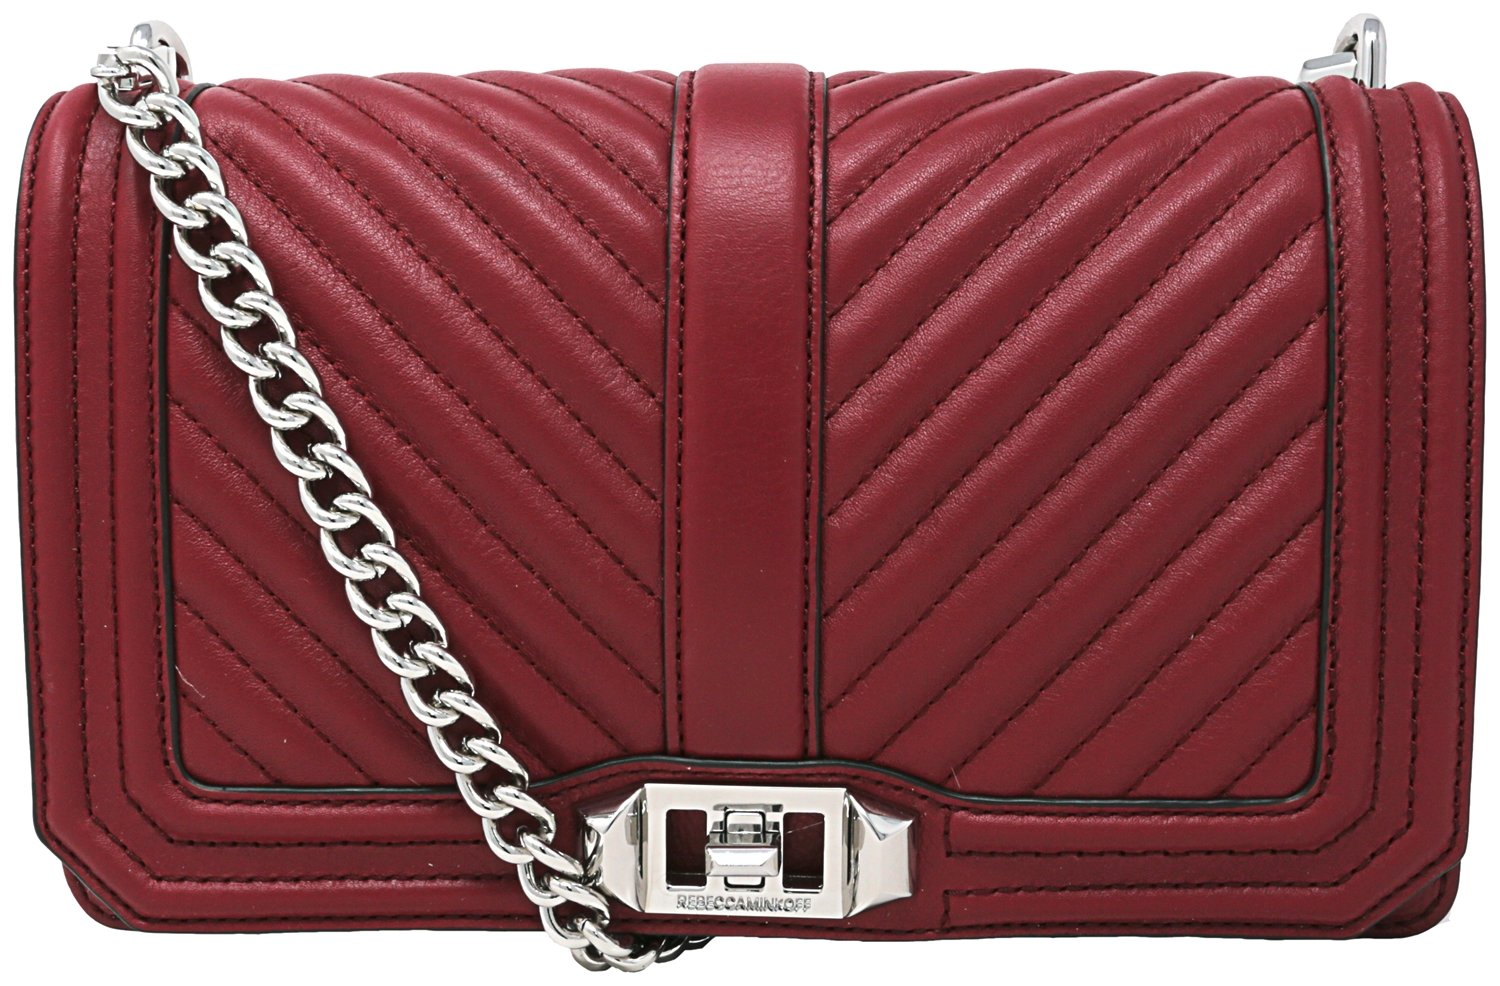 Rebecca Minkoff Chevron Quilted Love Leather Crossbody